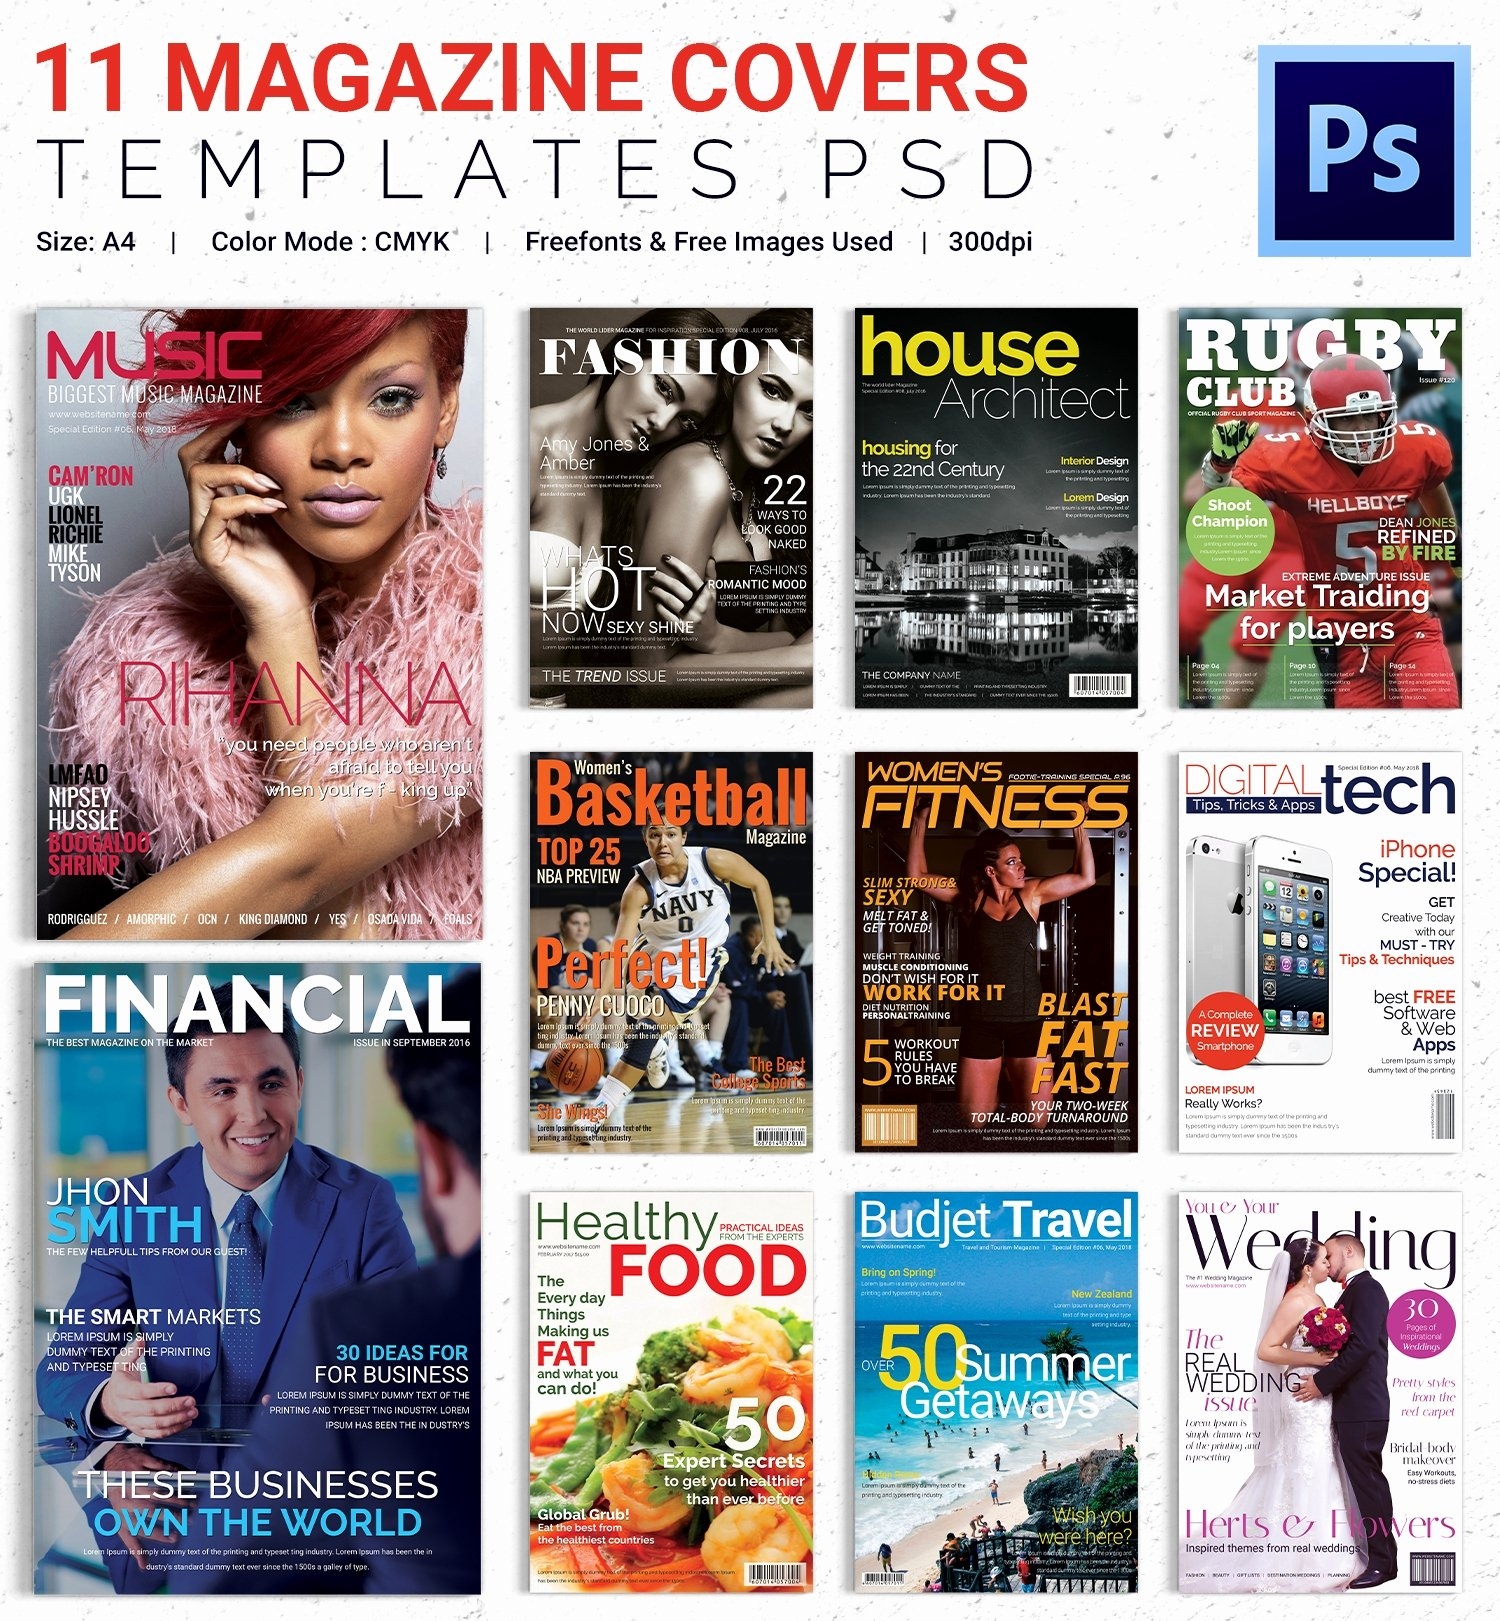 Photoshop Magazine Cover Template Best Of Magazine Cover Psd Template – 31 Free Psd Ai Vector Eps